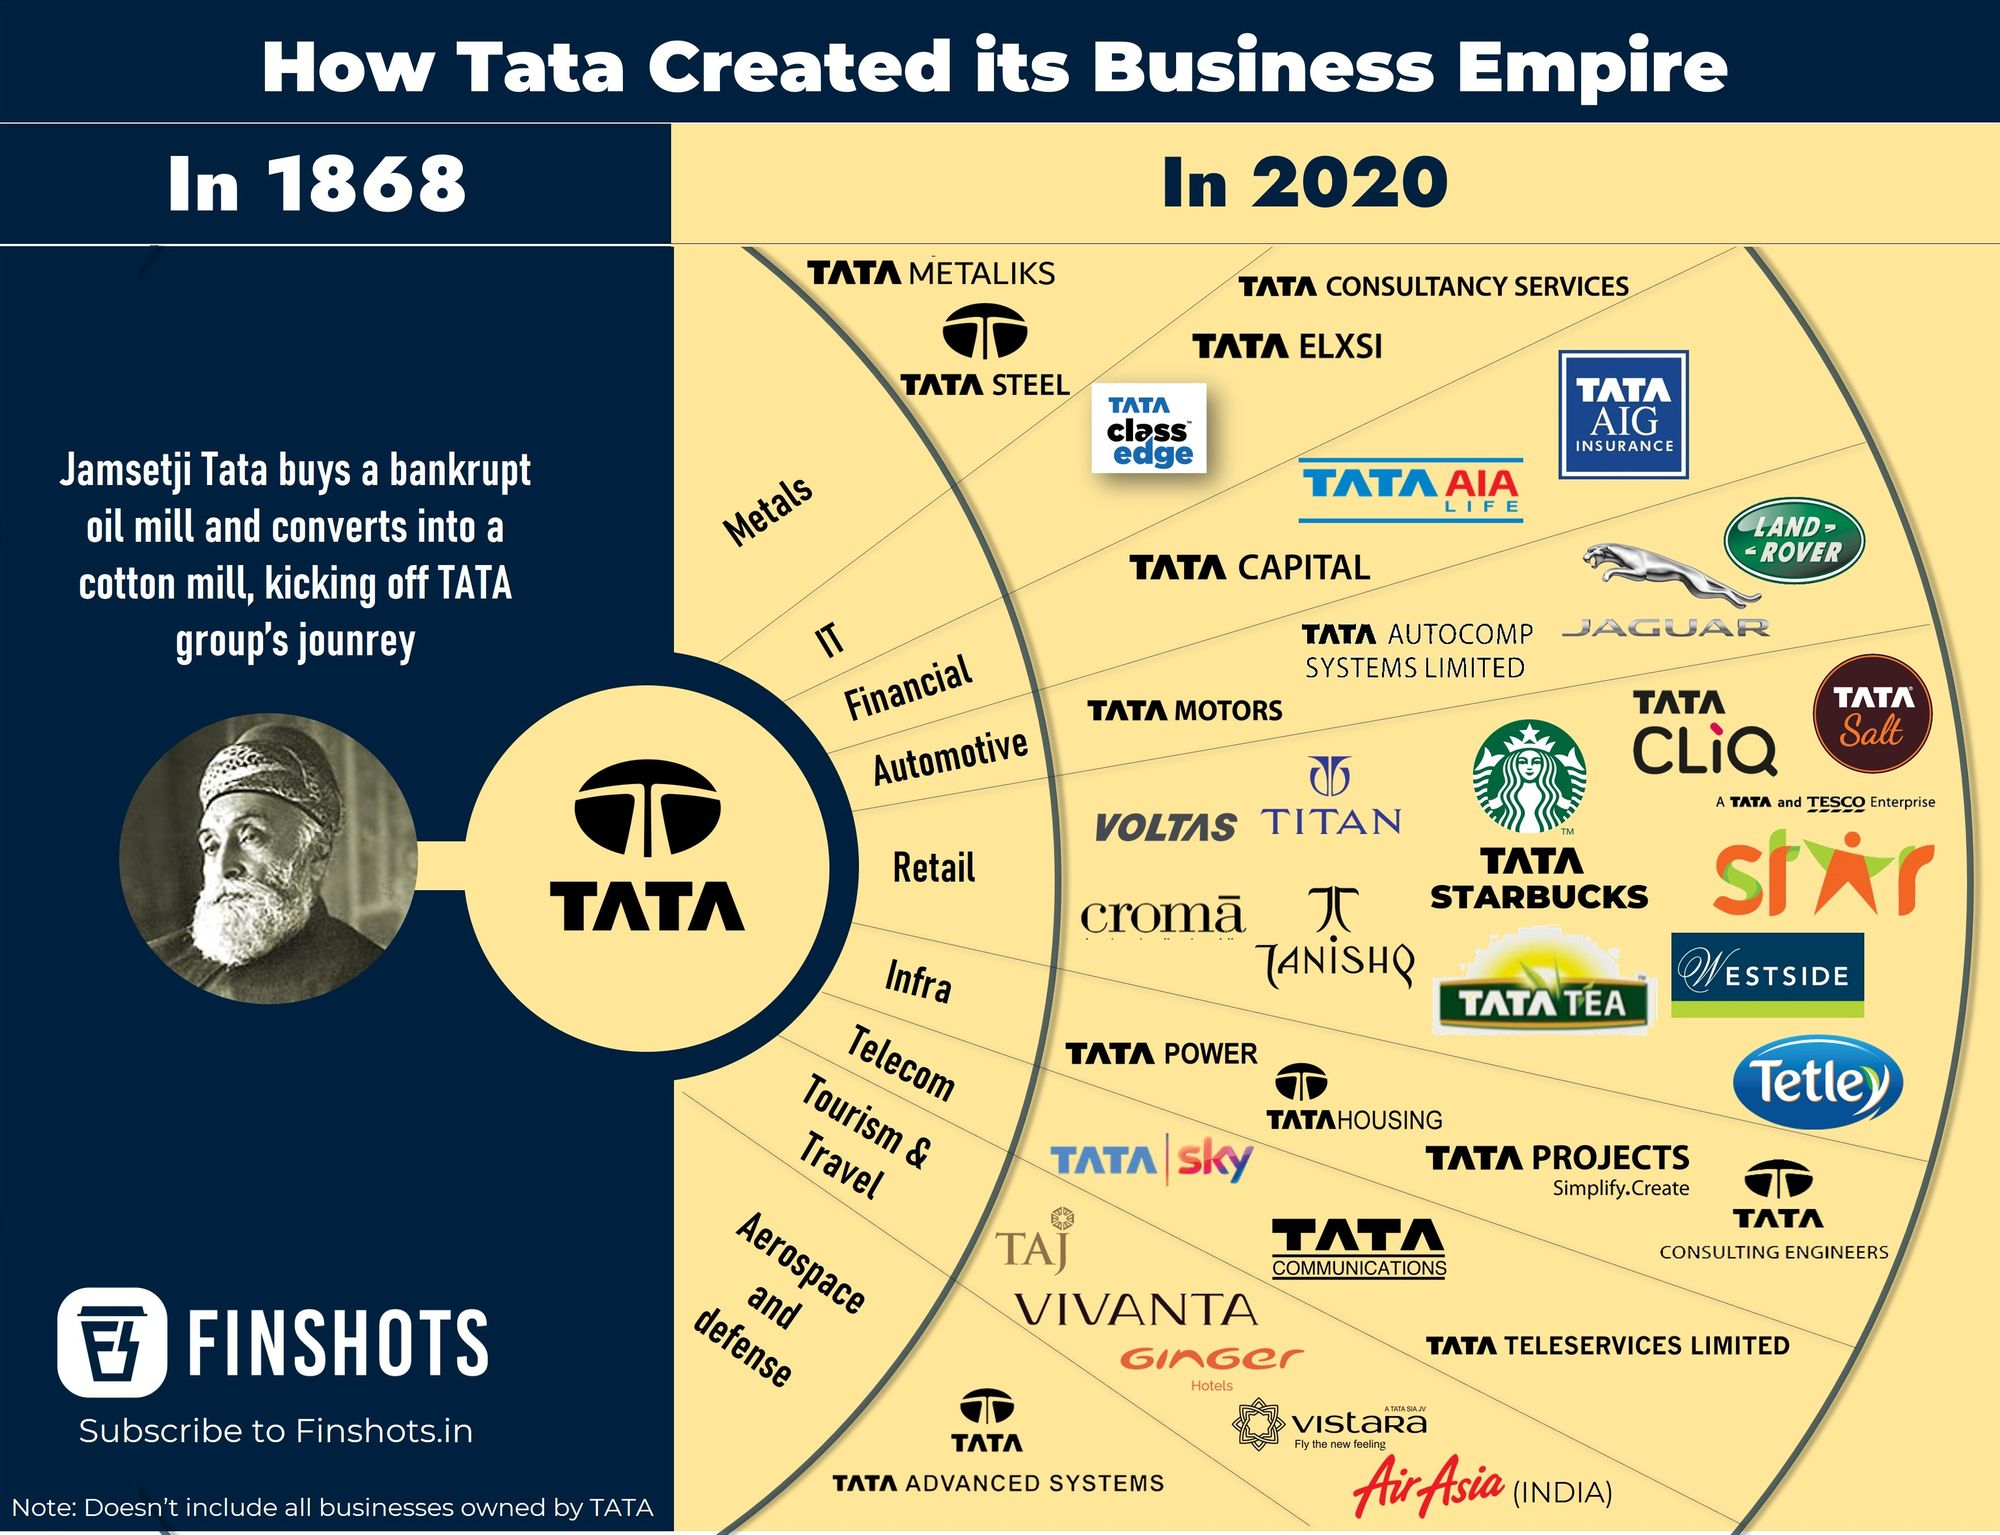 Tata Group's Business Empire